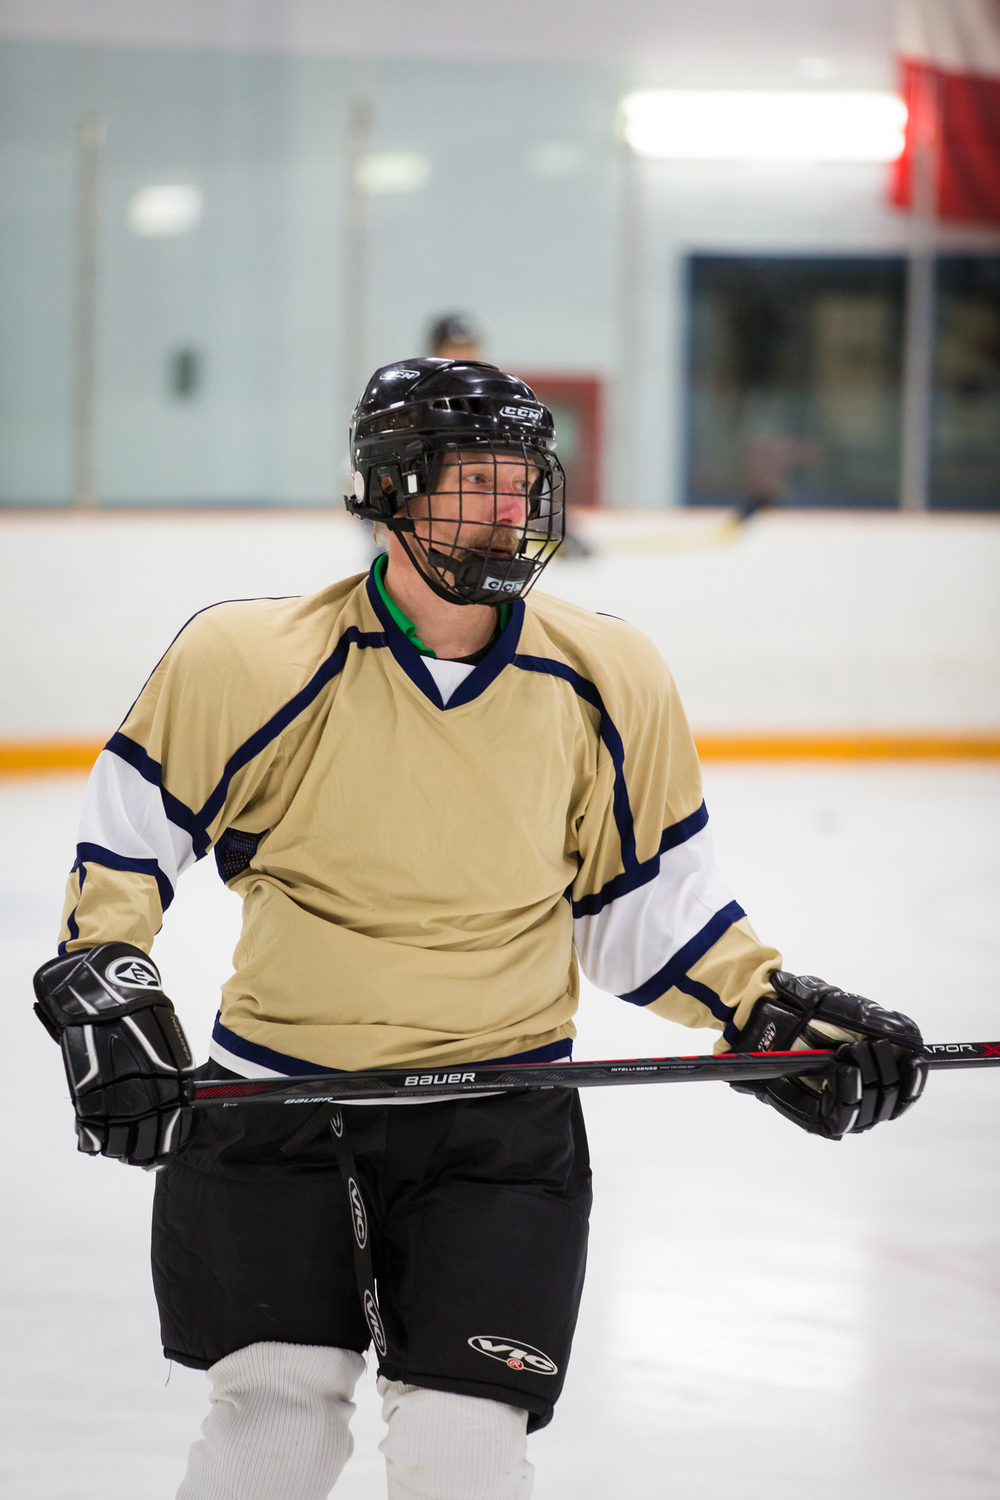 GrenfellCharityHockeyGame2016-April5-2016-3.jpg